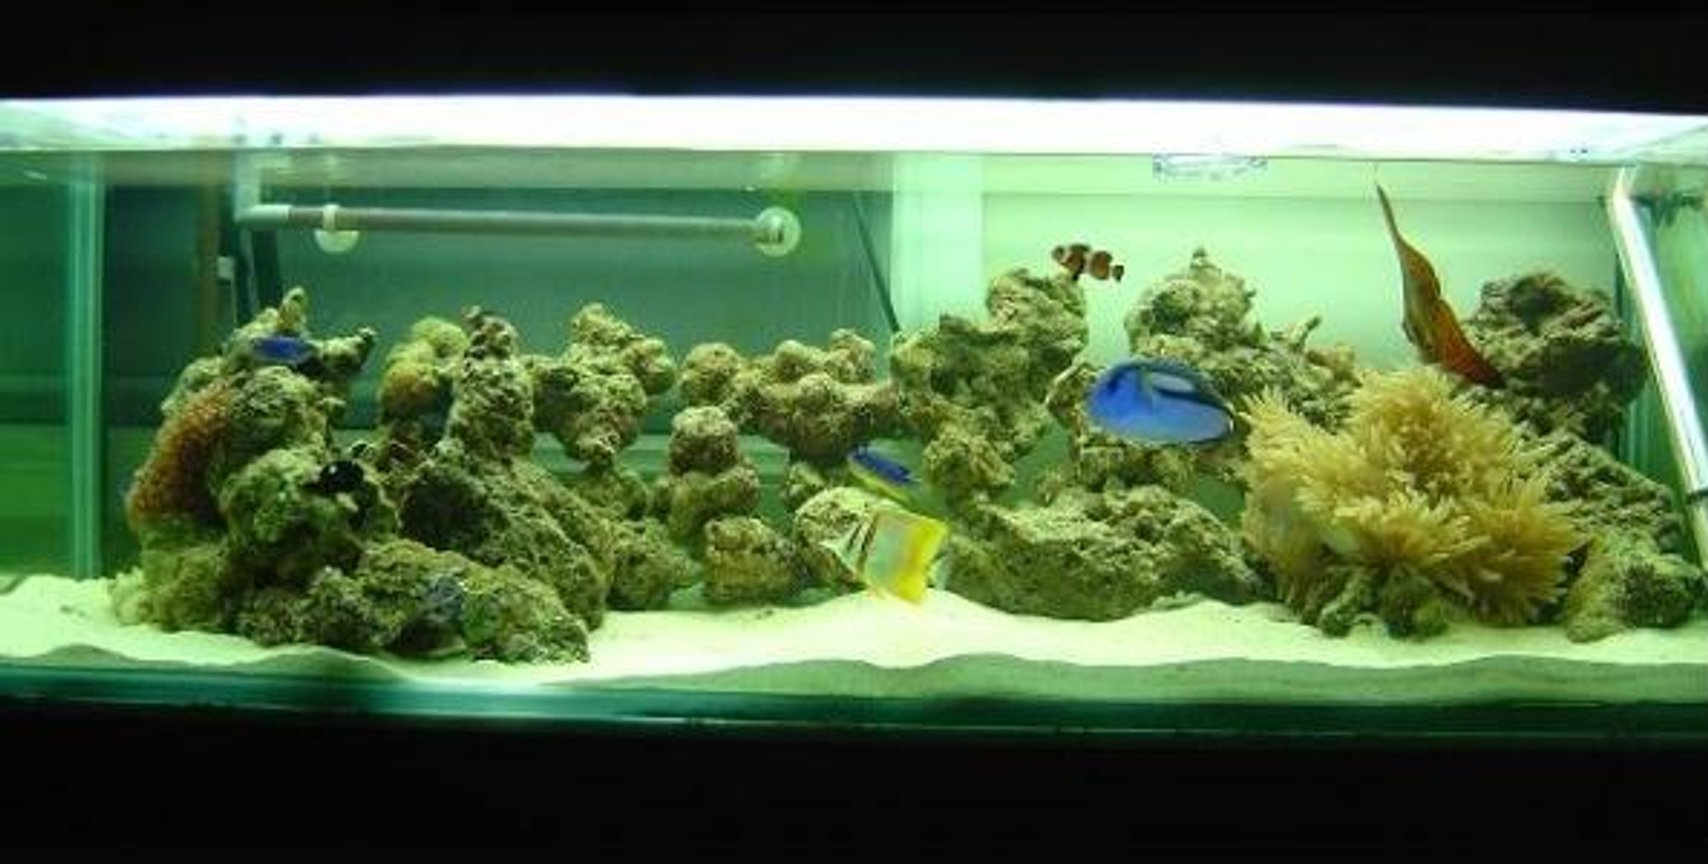 saltwater fish tank (mostly fish, little/no live coral) - Front shot